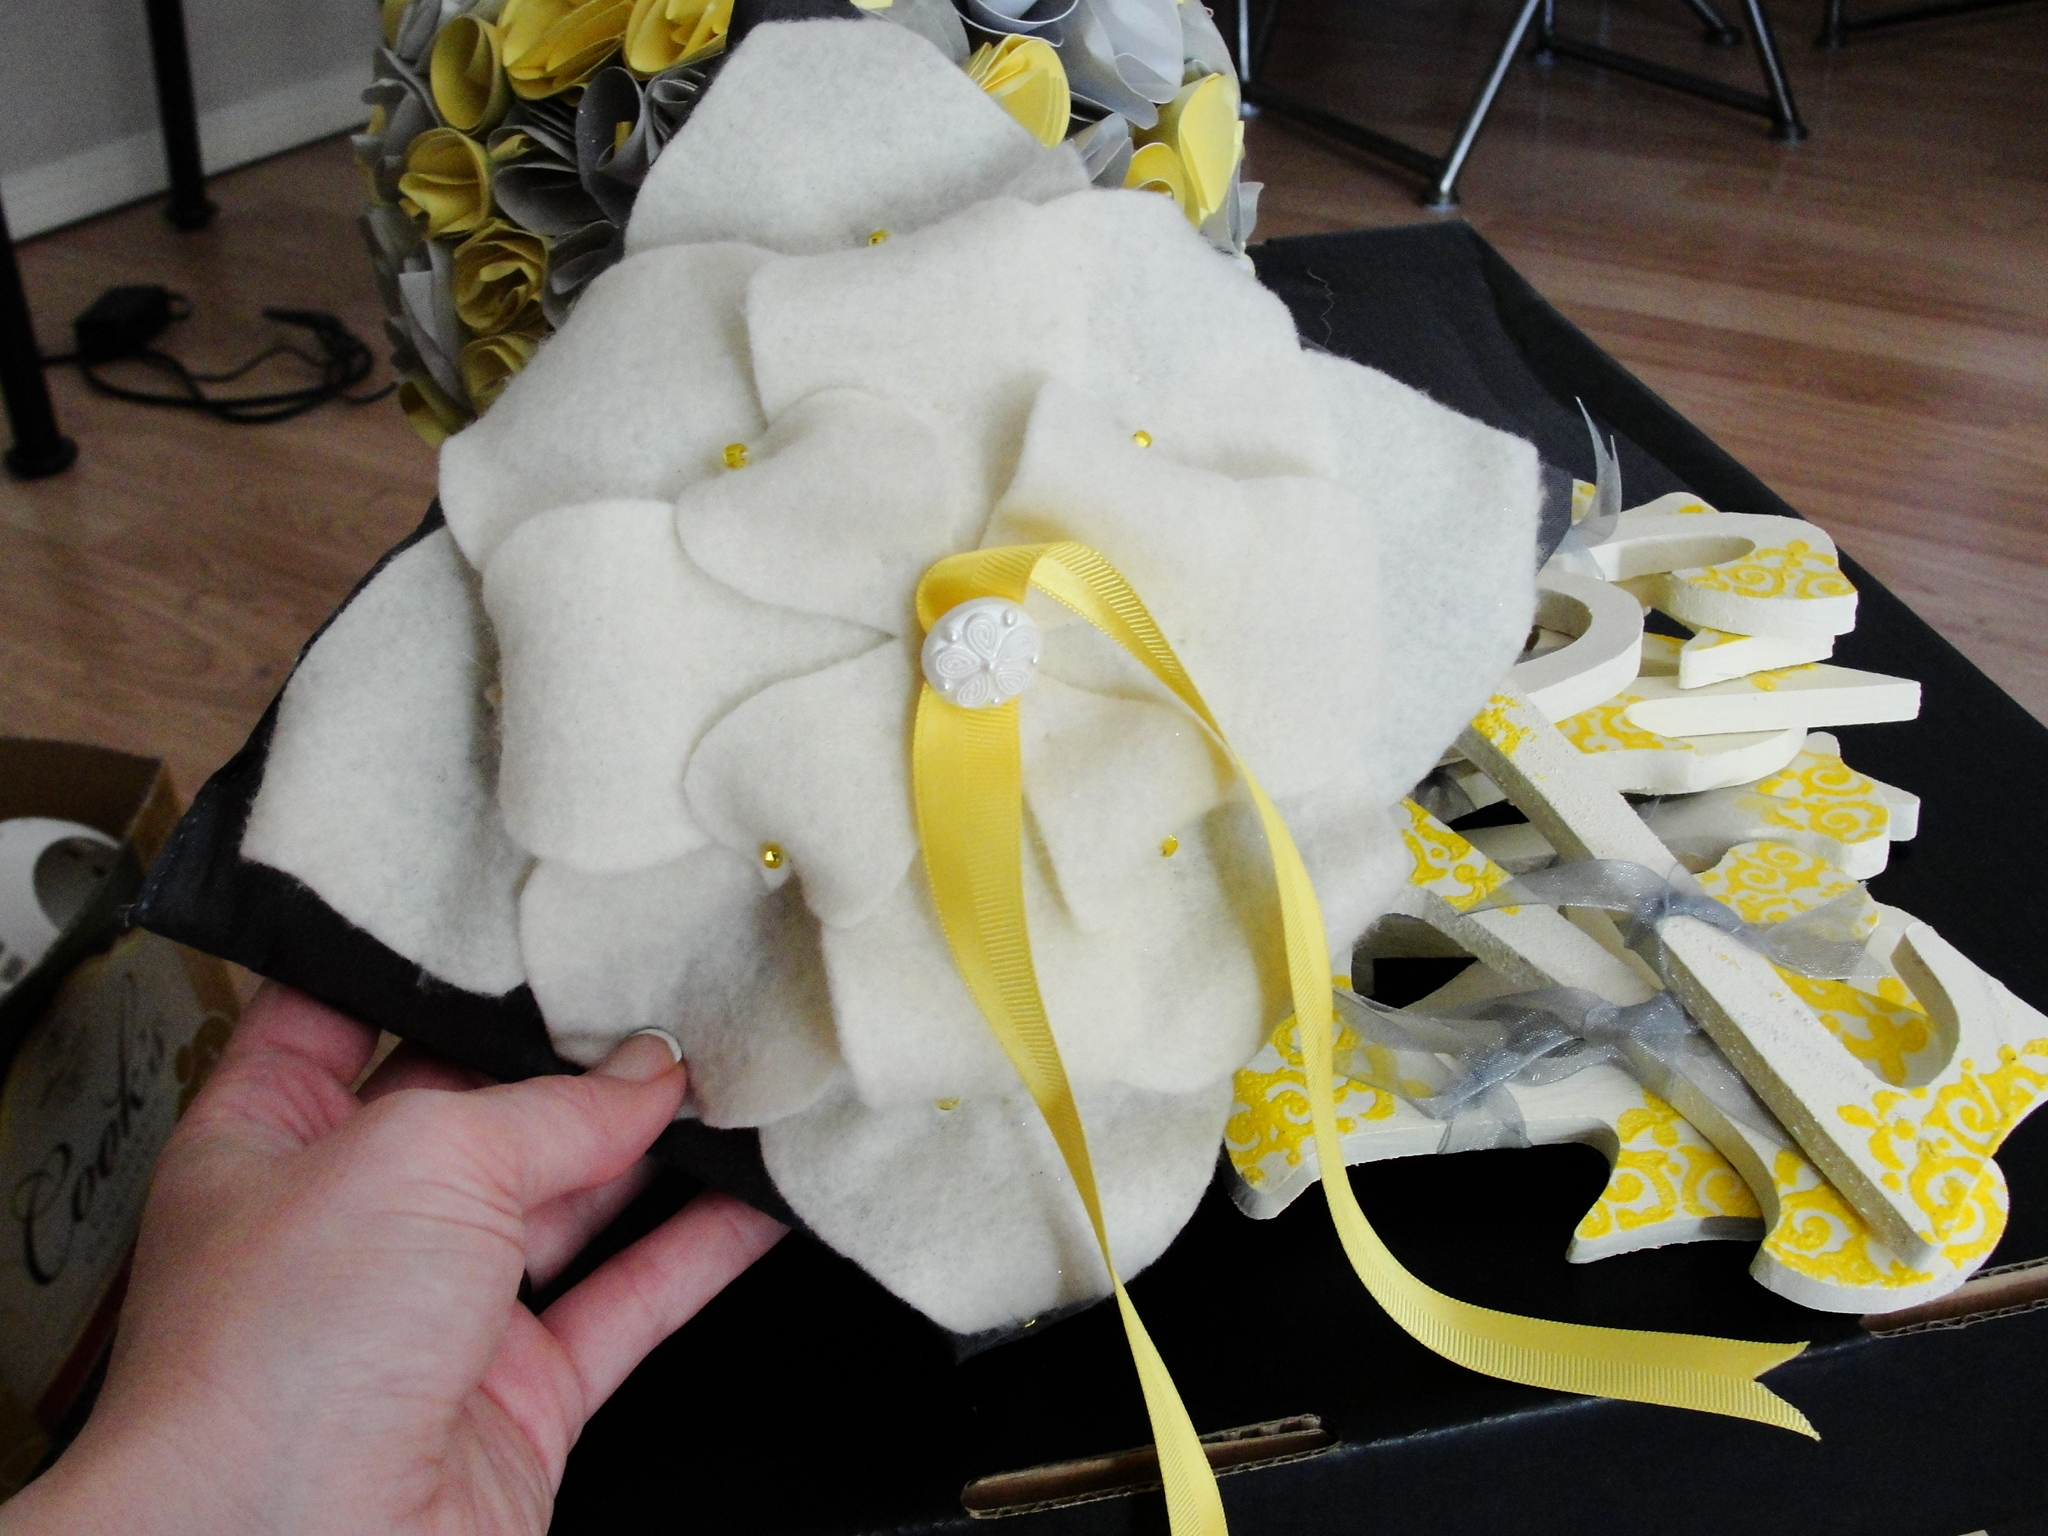 Ceremony, Flowers & Decor, yellow, silver, Ring, Pillow, Bearer